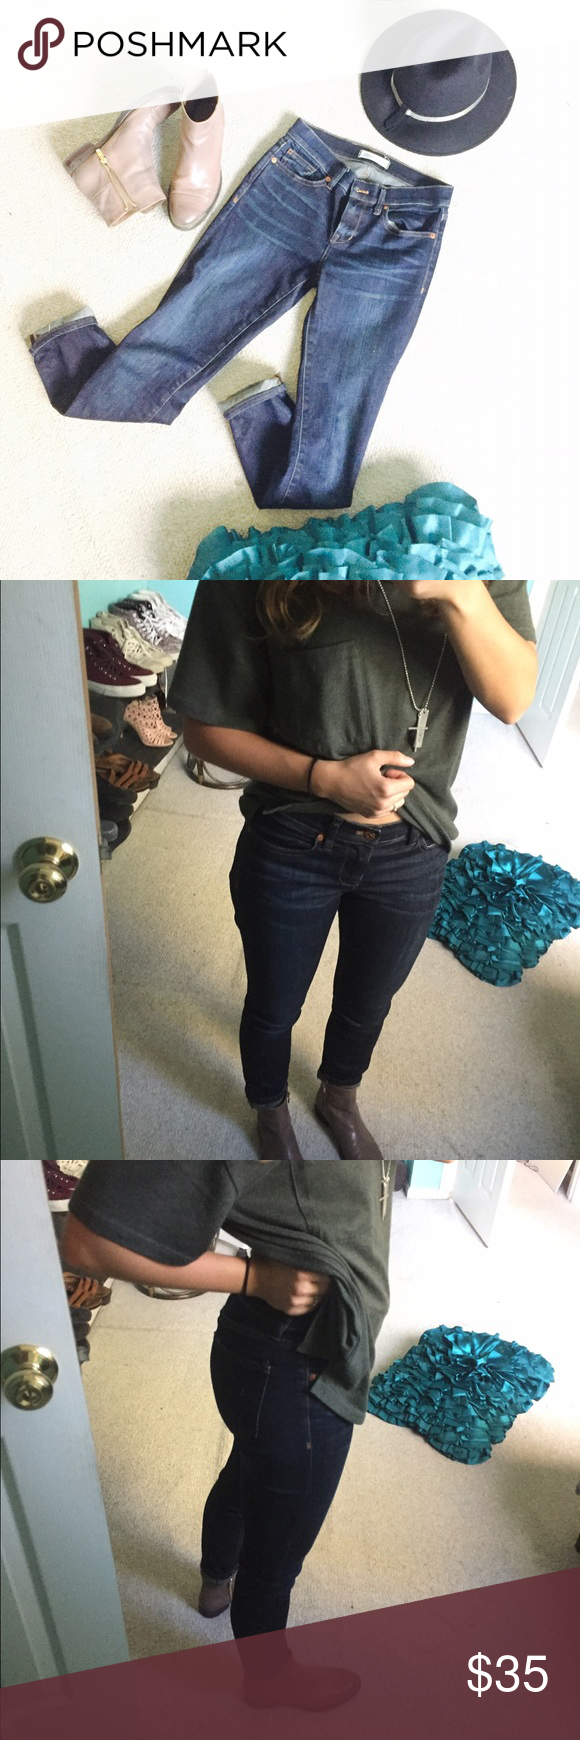 Madewell Skinny Skinny Denim Jeans These jeans are in perfect condition and super cute for the spring or summer coming up🌞 true color shown well in last pic! They are dark with a light wash down the middle front :) (only selling bc I like high wasted better) Madewell Pants Ankle & Cropped